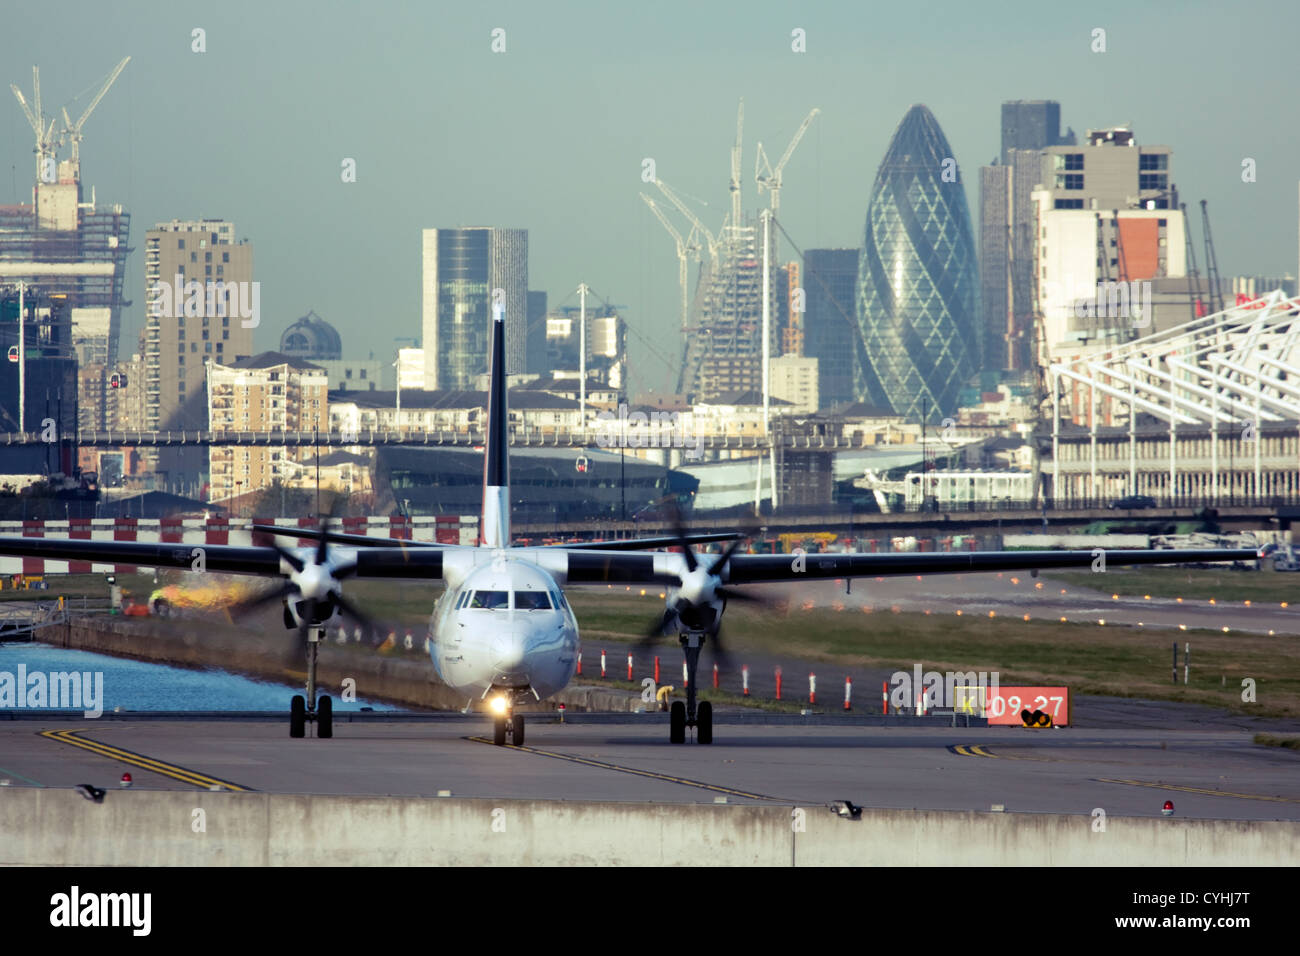 Regional airliner at London City Airport, England, UK Stock Photo